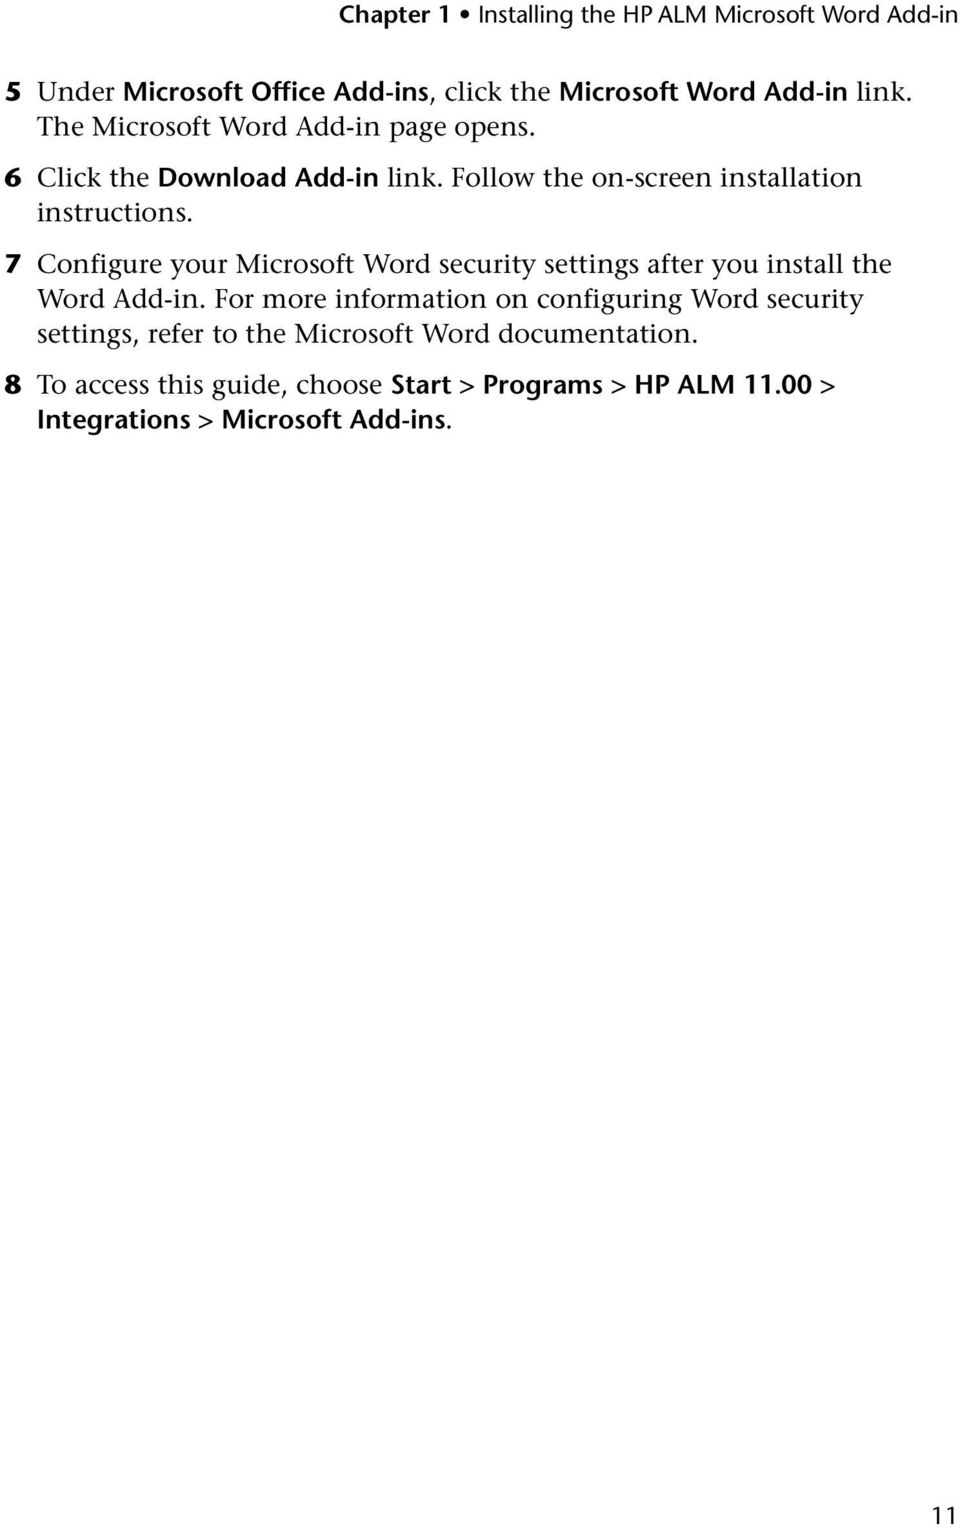 7 Configure your Microsoft Word security settings after you install the Word Add-in.